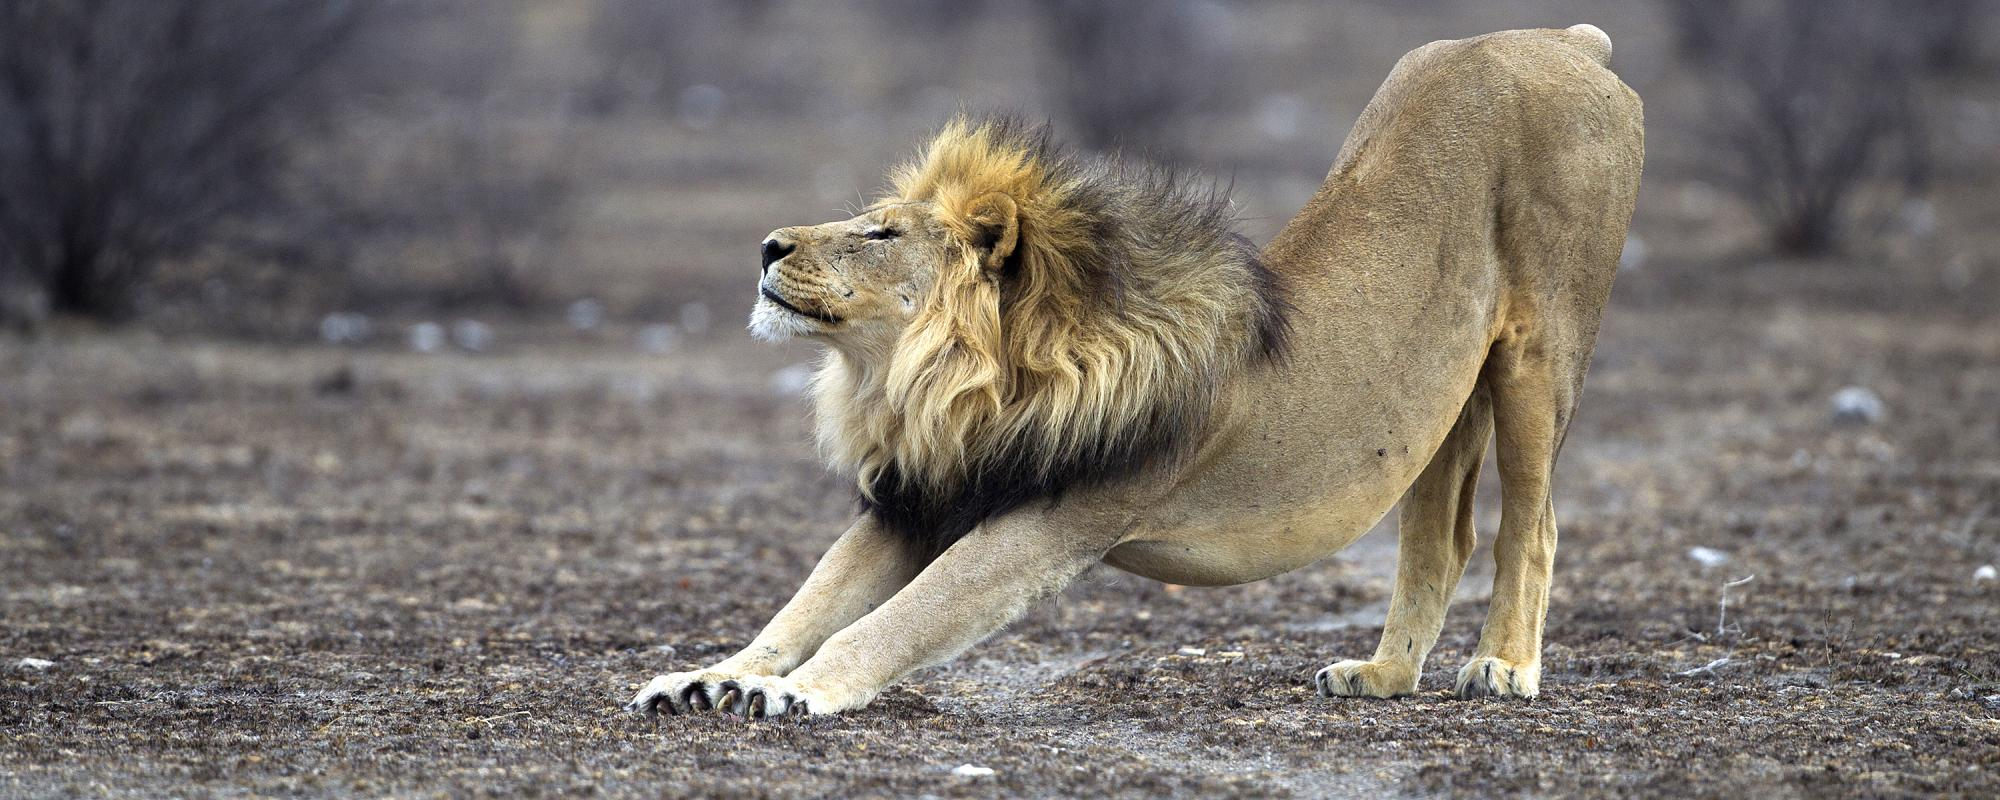 African lion stretching